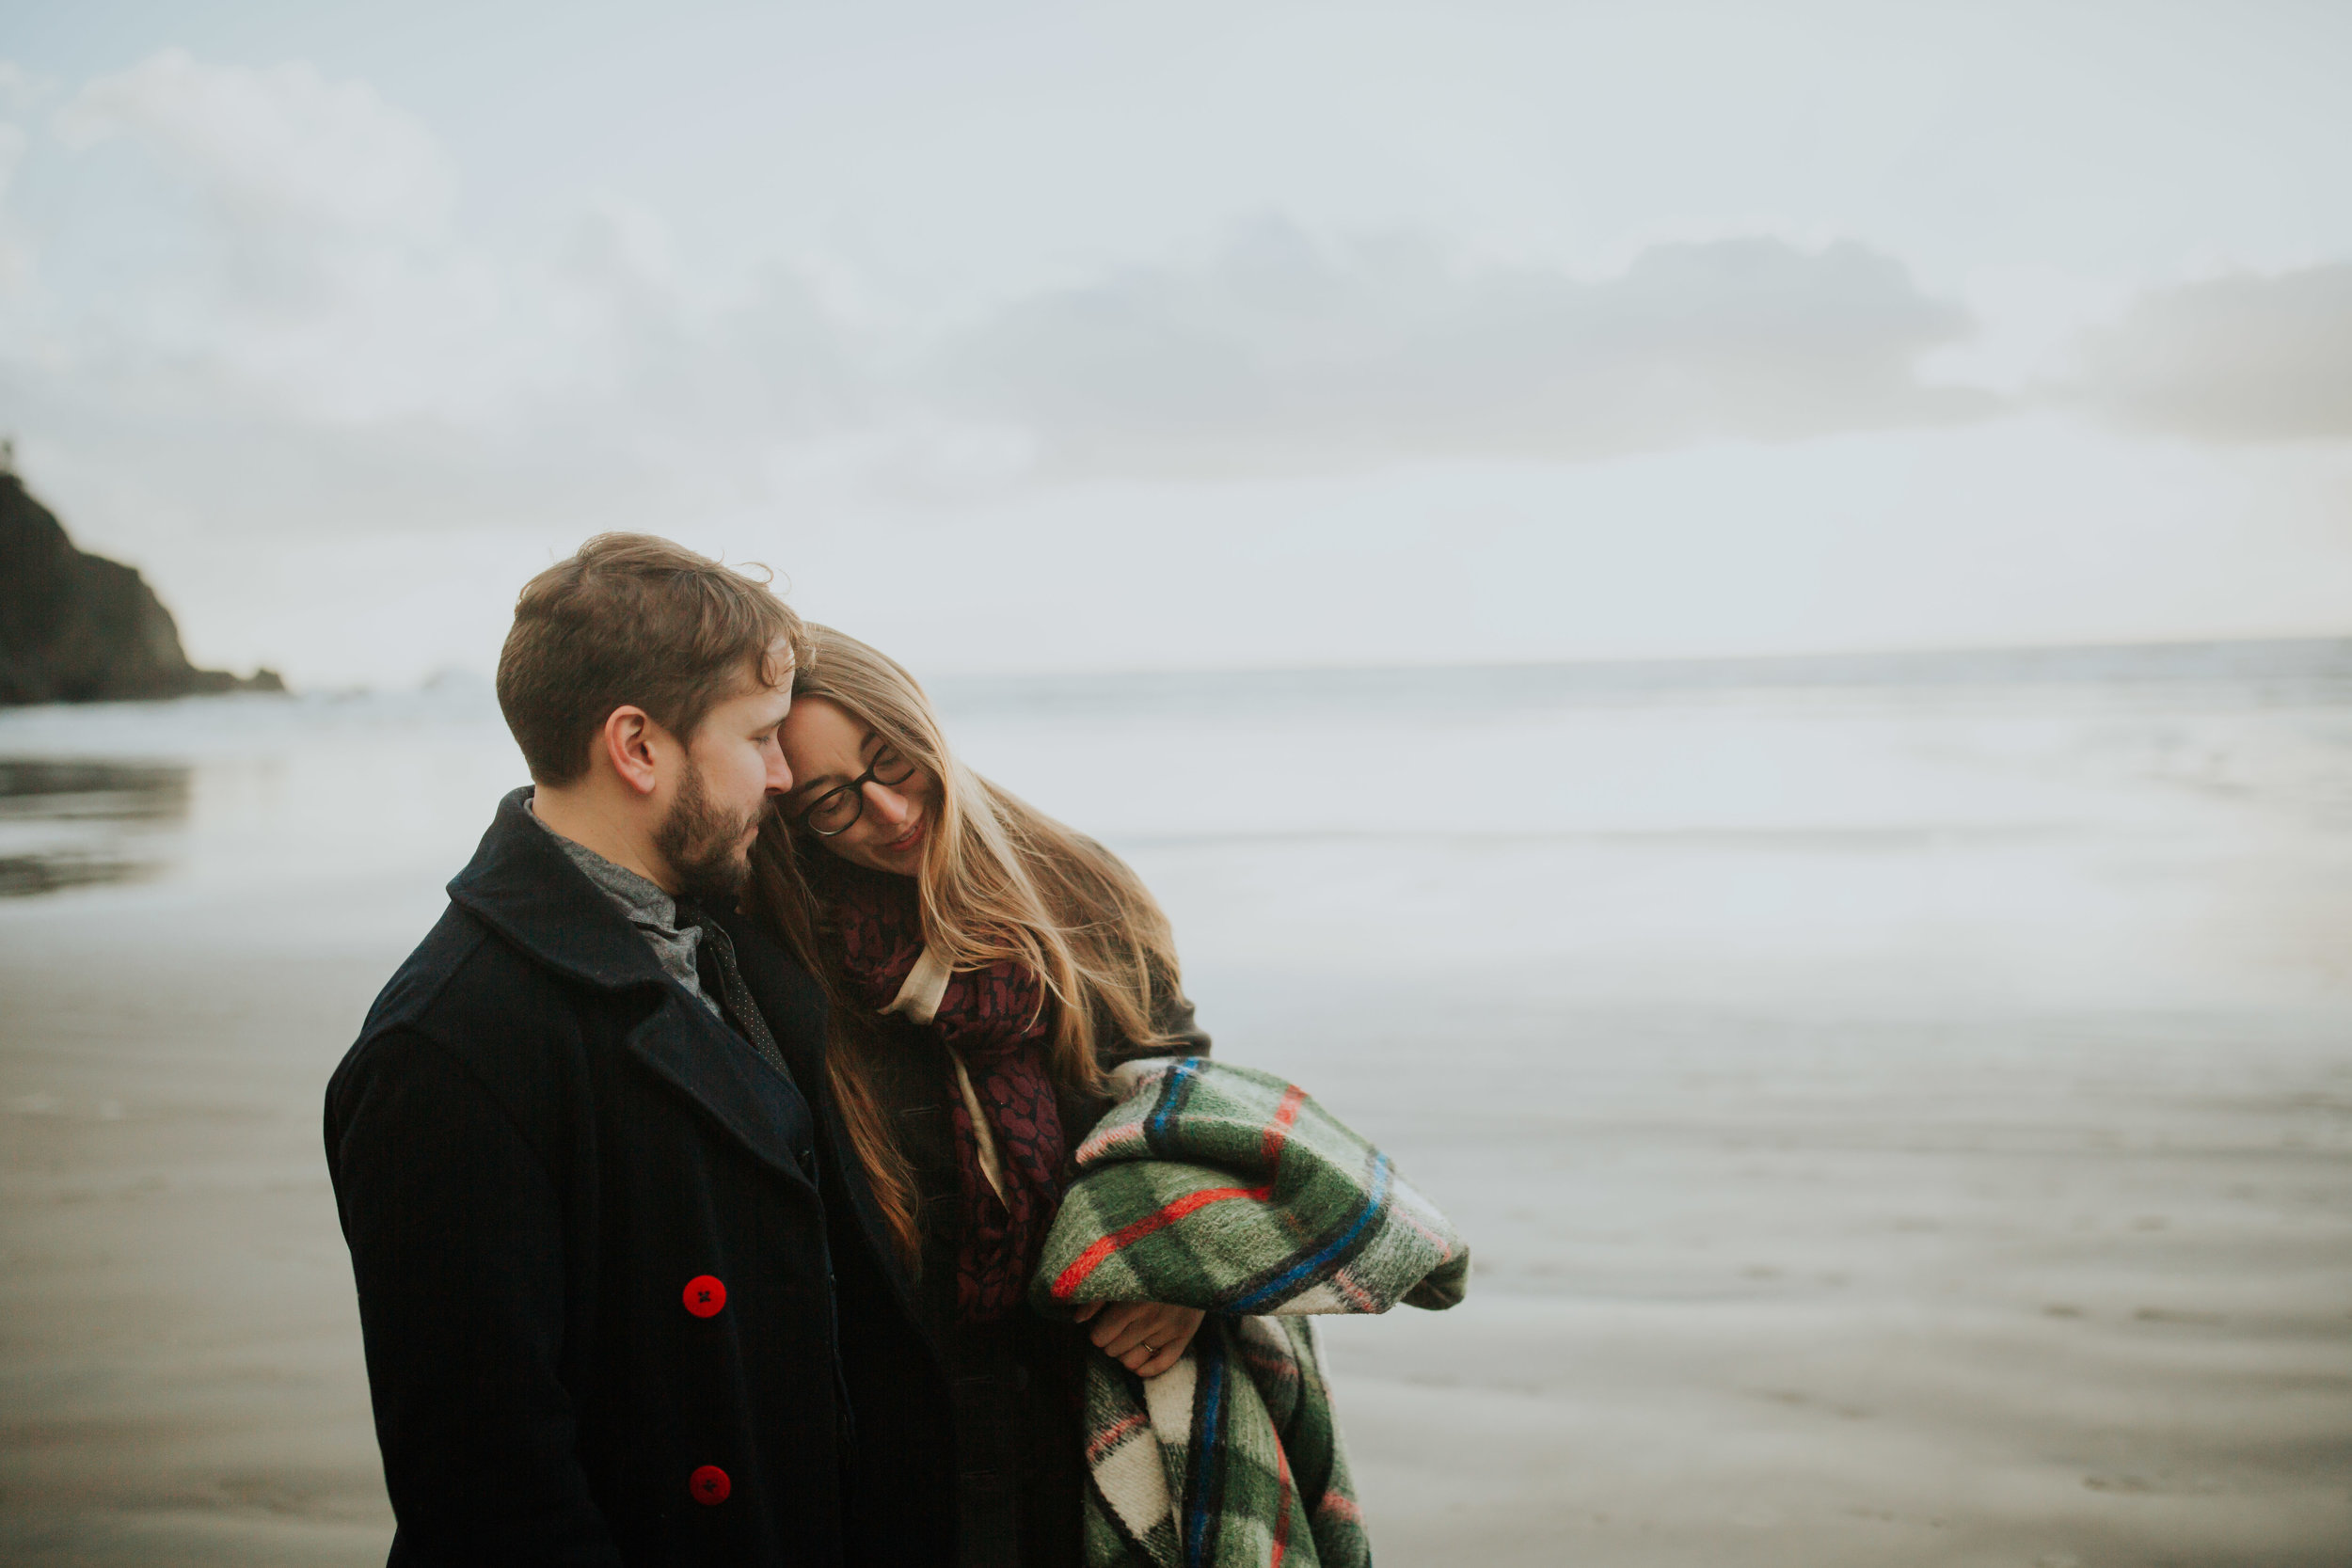 Oregon Coast Elopement Adventure Wedding Photographer-8.jpg